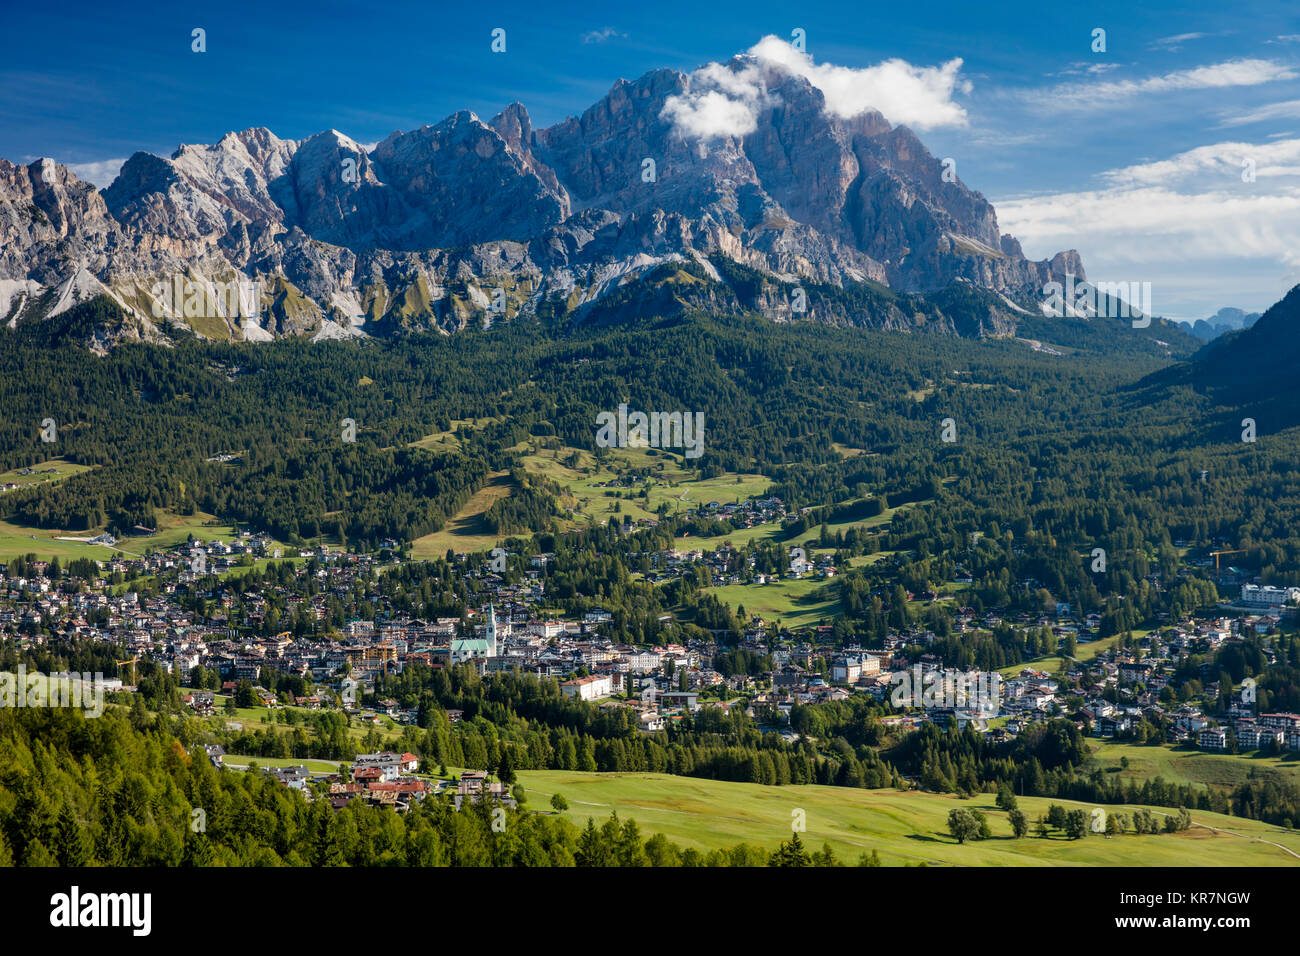 Monte Cristallo of the Dolomite Mountains looming over town of Cortina d'Ampezzo. Belluno, Italy - Stock Image